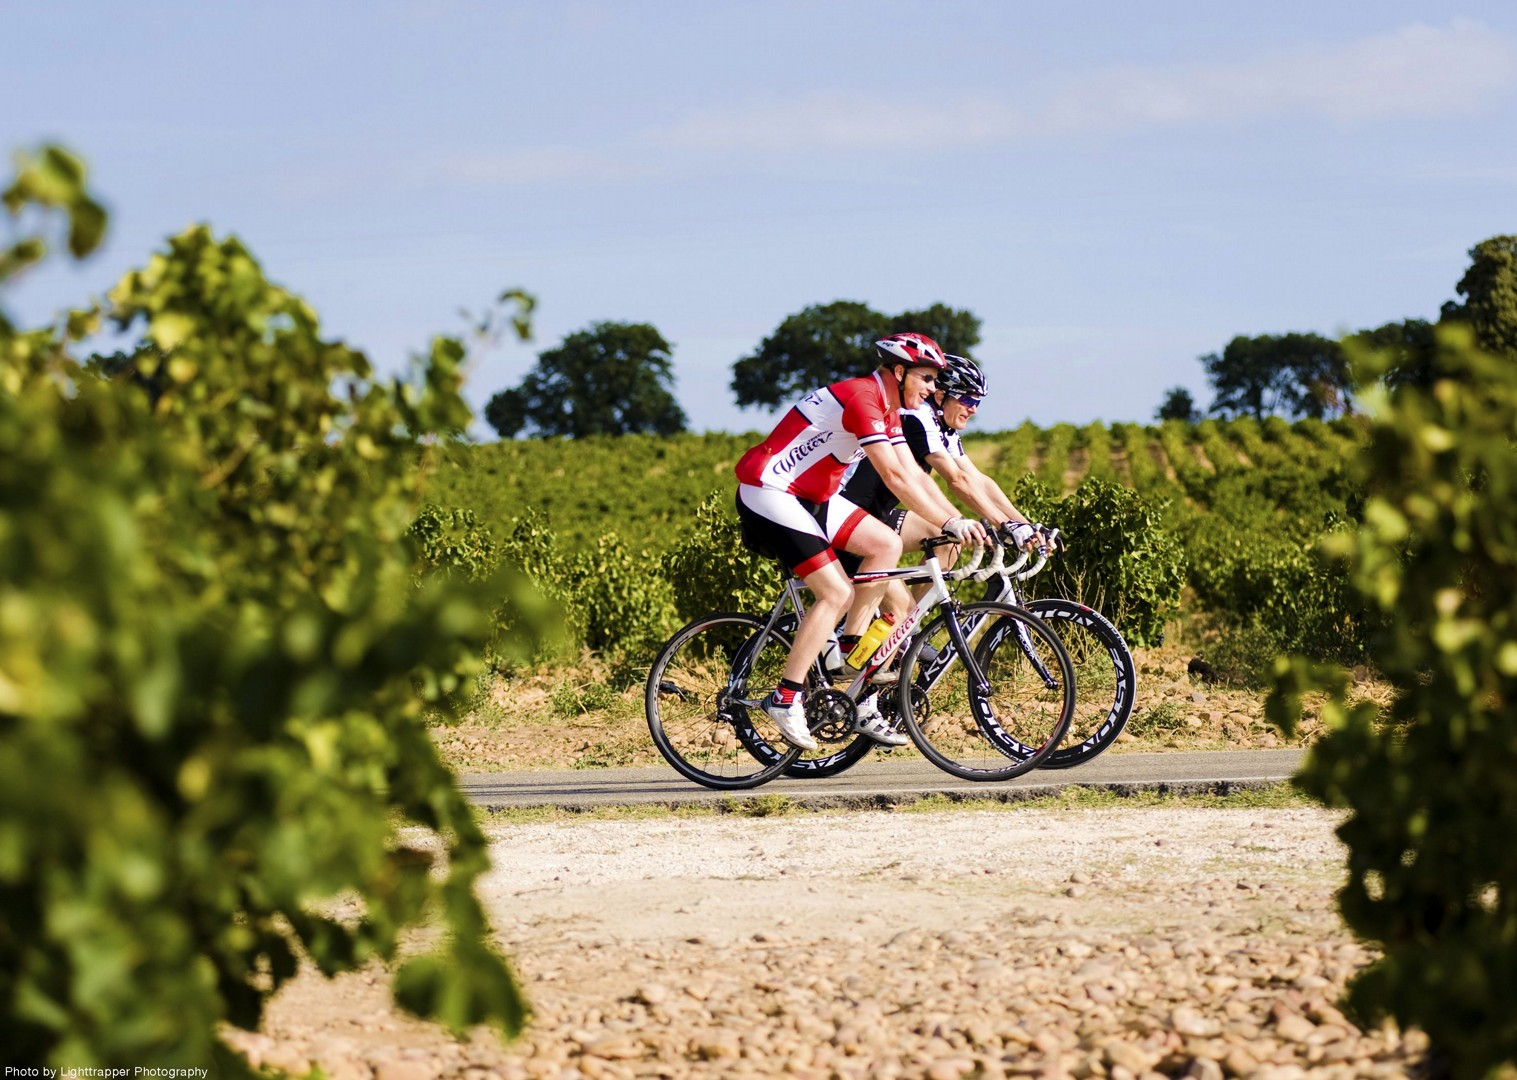 guided-cycling-holiday-france-peloton-road.jpg - France - Alsace, Burgundy and Beaujolais - Guided Road Cycling Holiday - Road Cycling